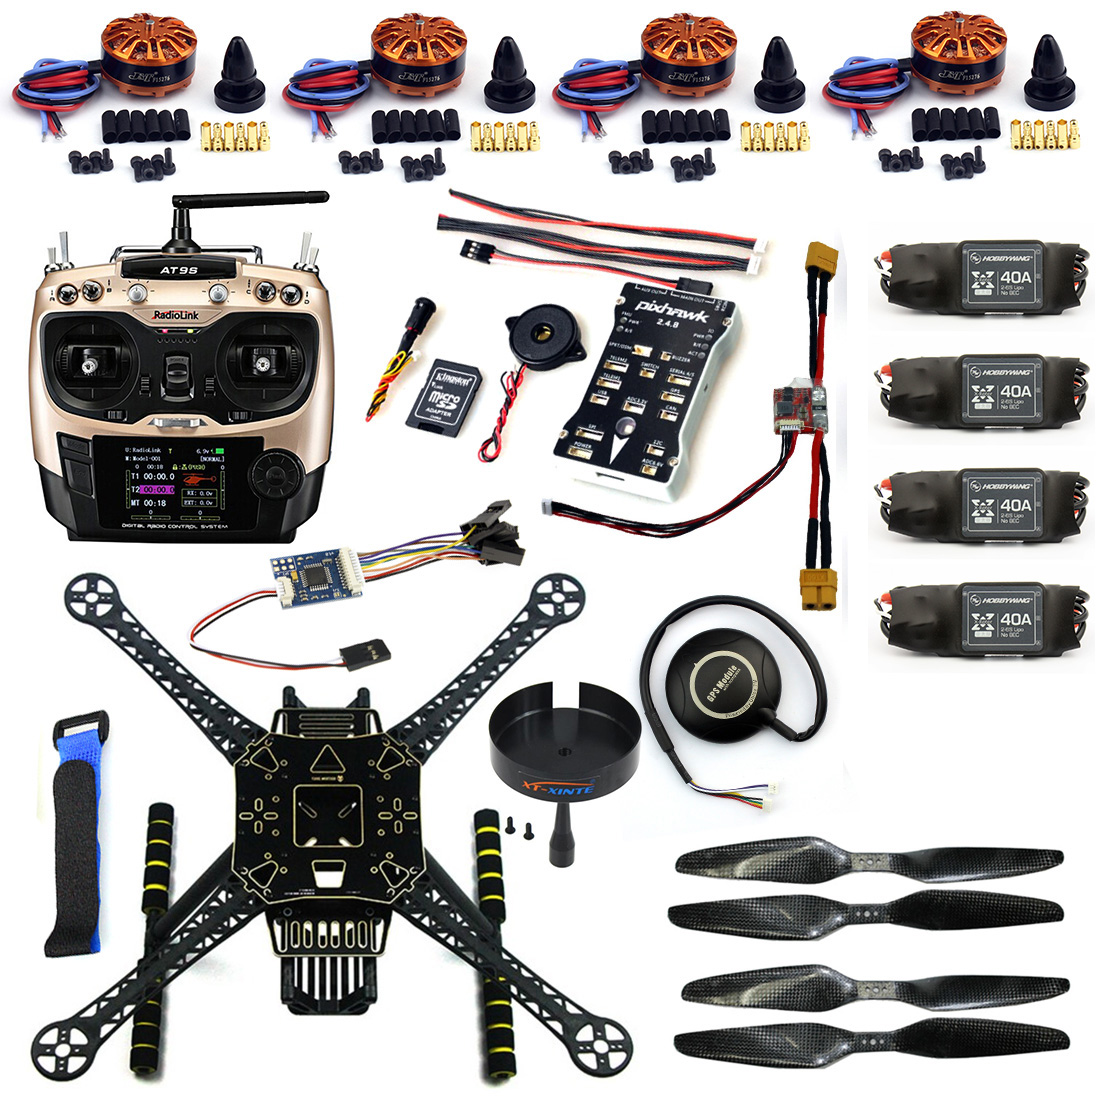 F19457-B DIY FPV Drone Kit S600 4-Axle Frame 40A ESC with 700KV Motor Pix 2.4.8 Flight Control AT9S Transimitter GPS XT60 Plug diy set pix4 flight control zd850 frame kit m8n gps remote control radio telemetry esc motor props rc 6 axle drone f19833 d